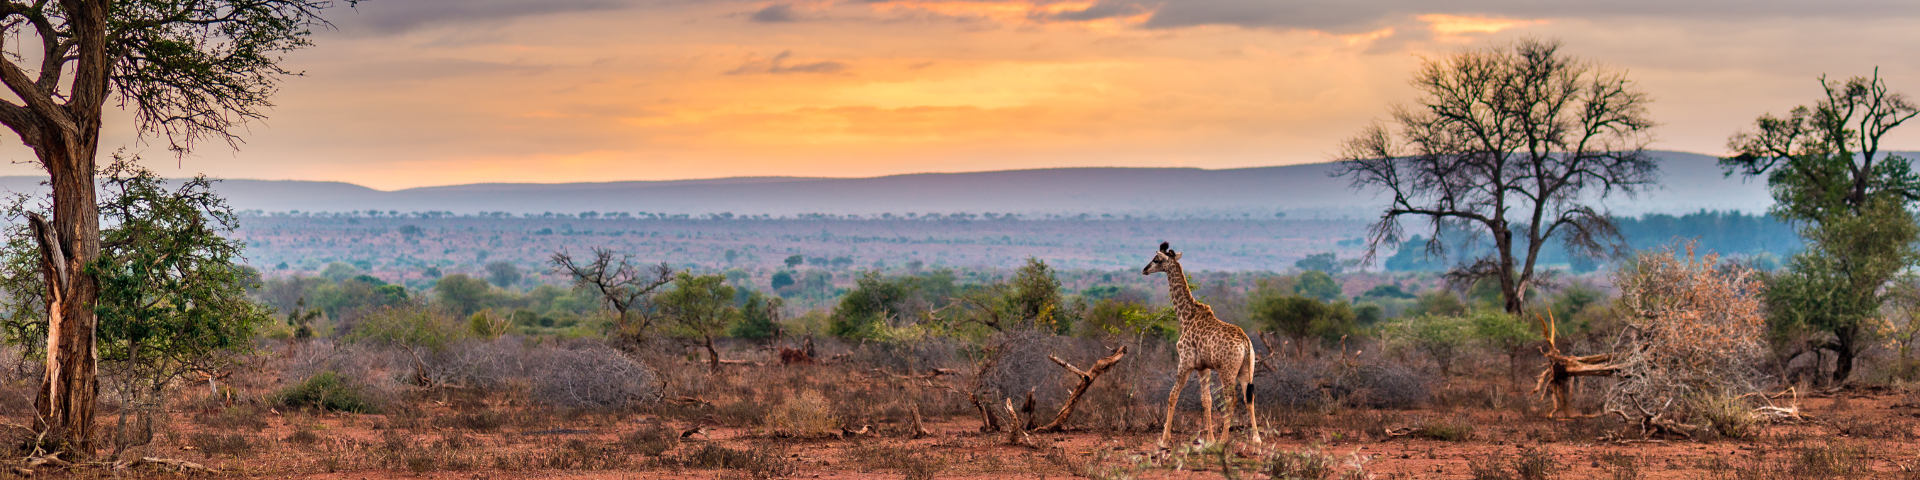 Giraffe in Kruger National Park in Zuid Afrika